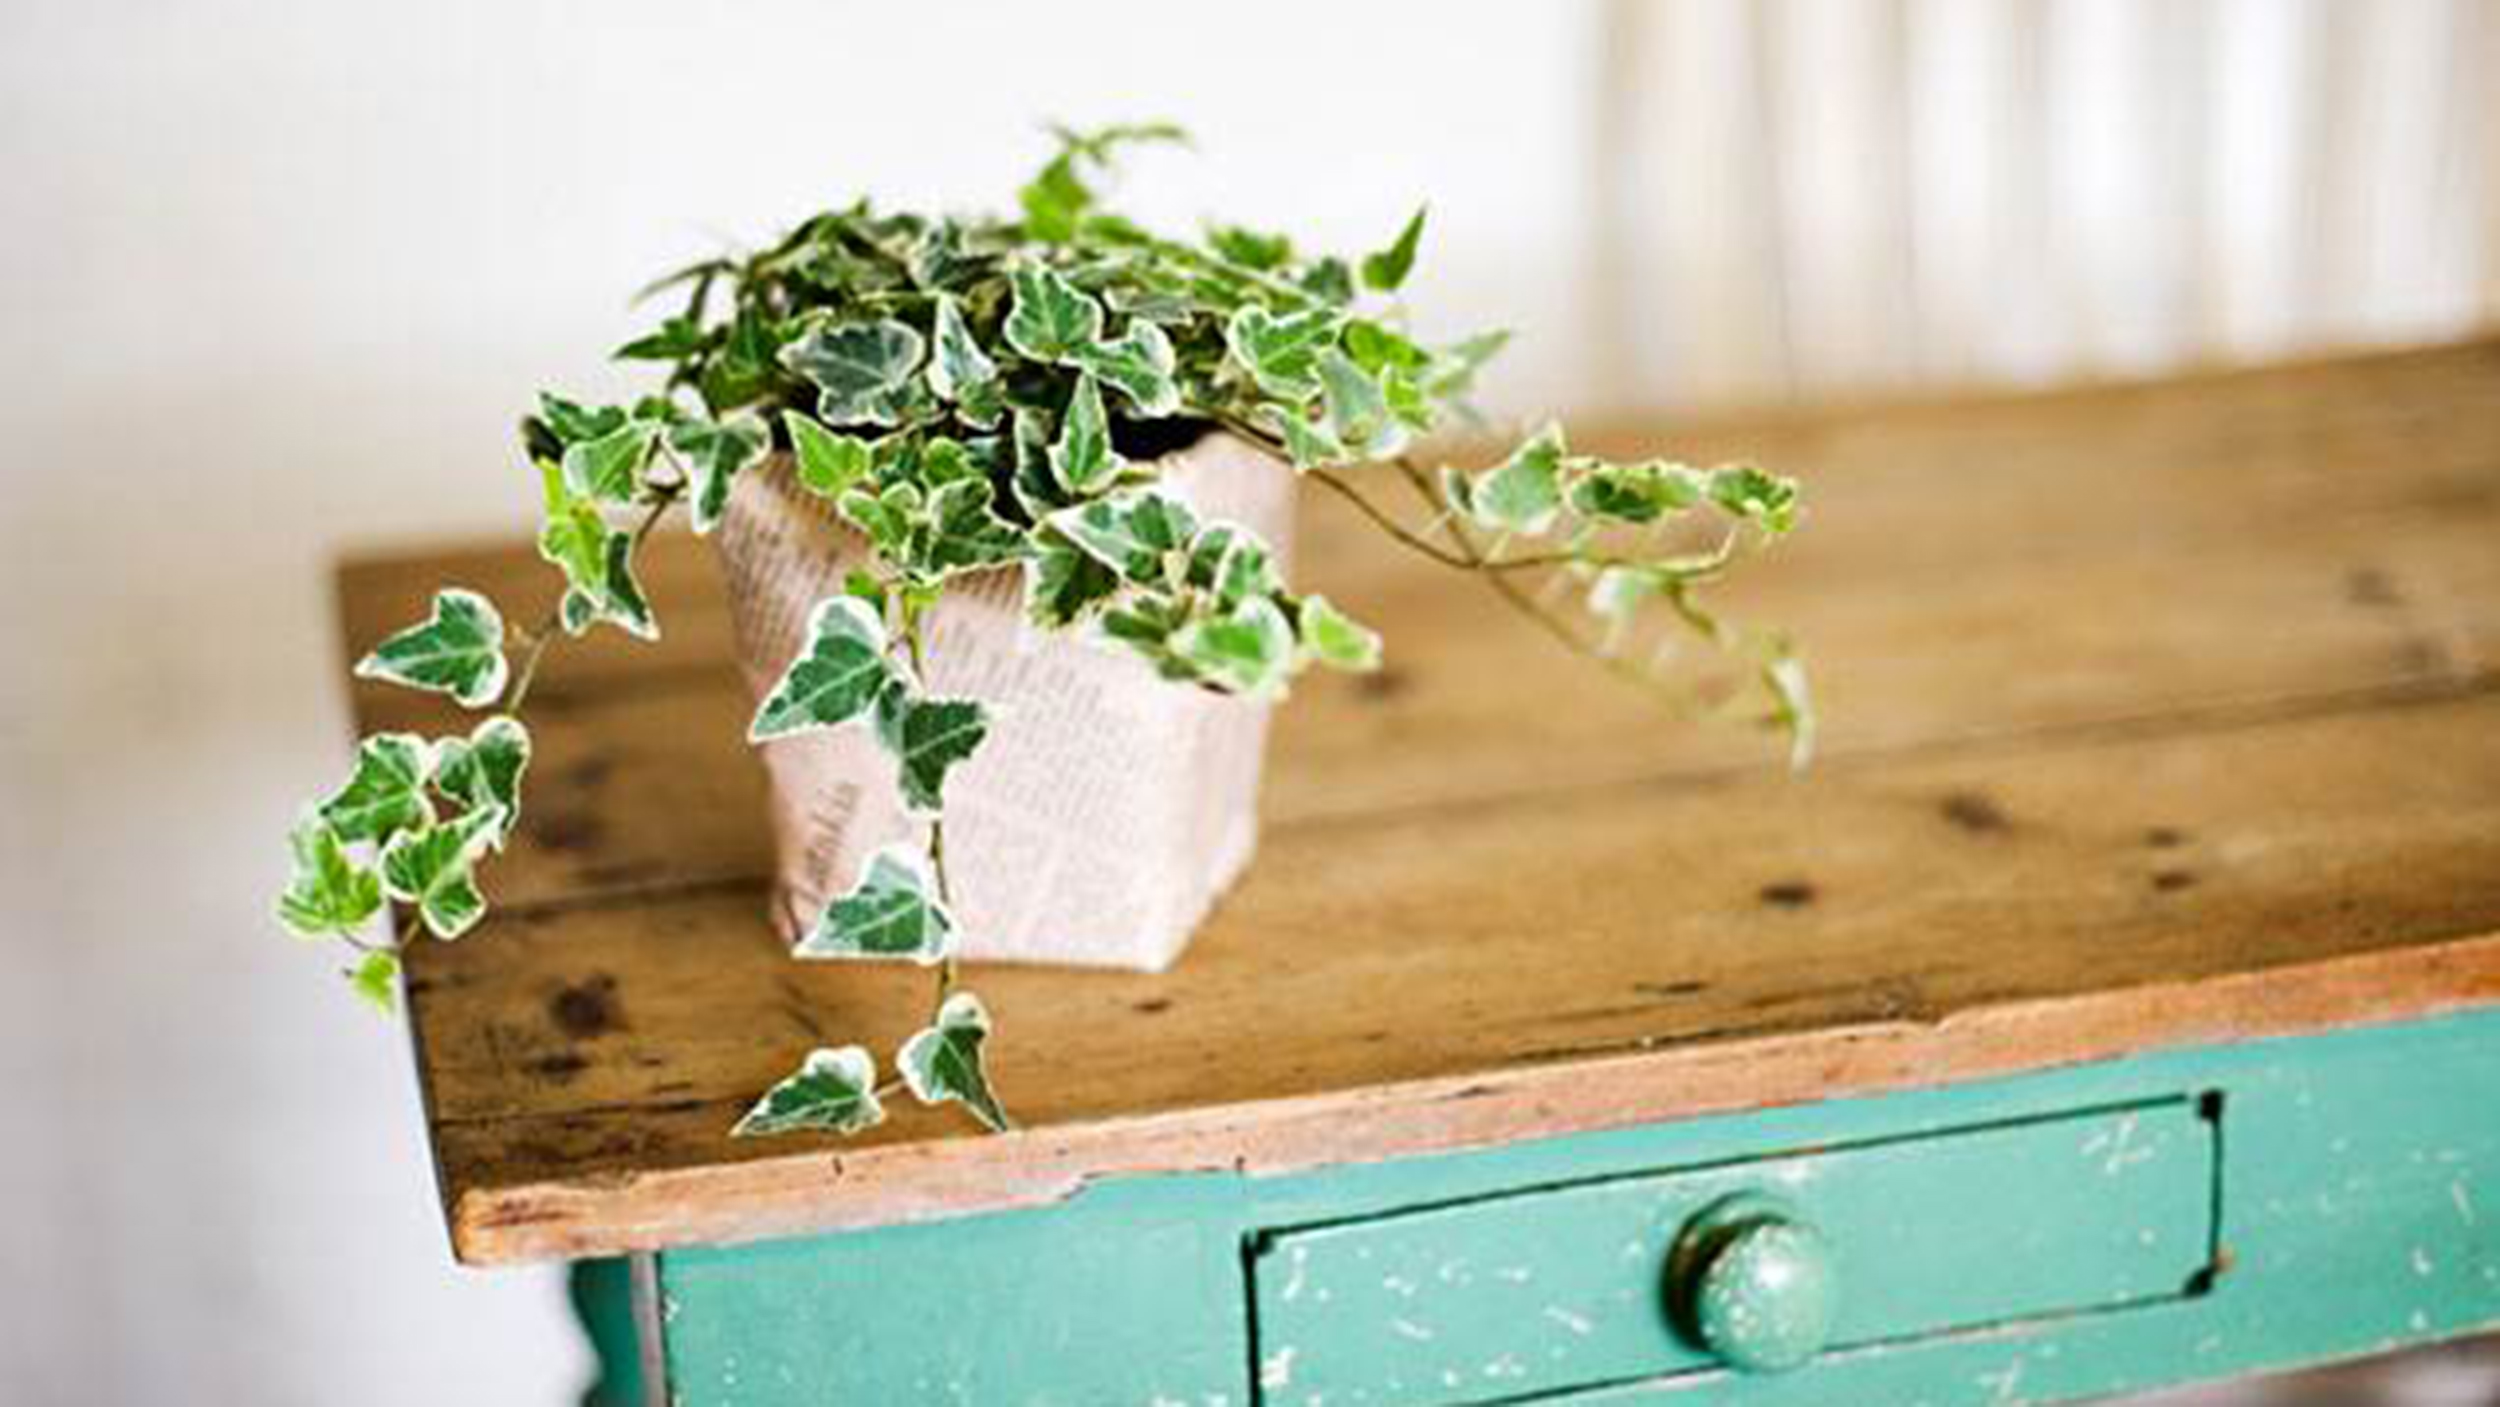 Indoor Plants For Home The Easiest Indoor House Plants That Won 39t Die On You